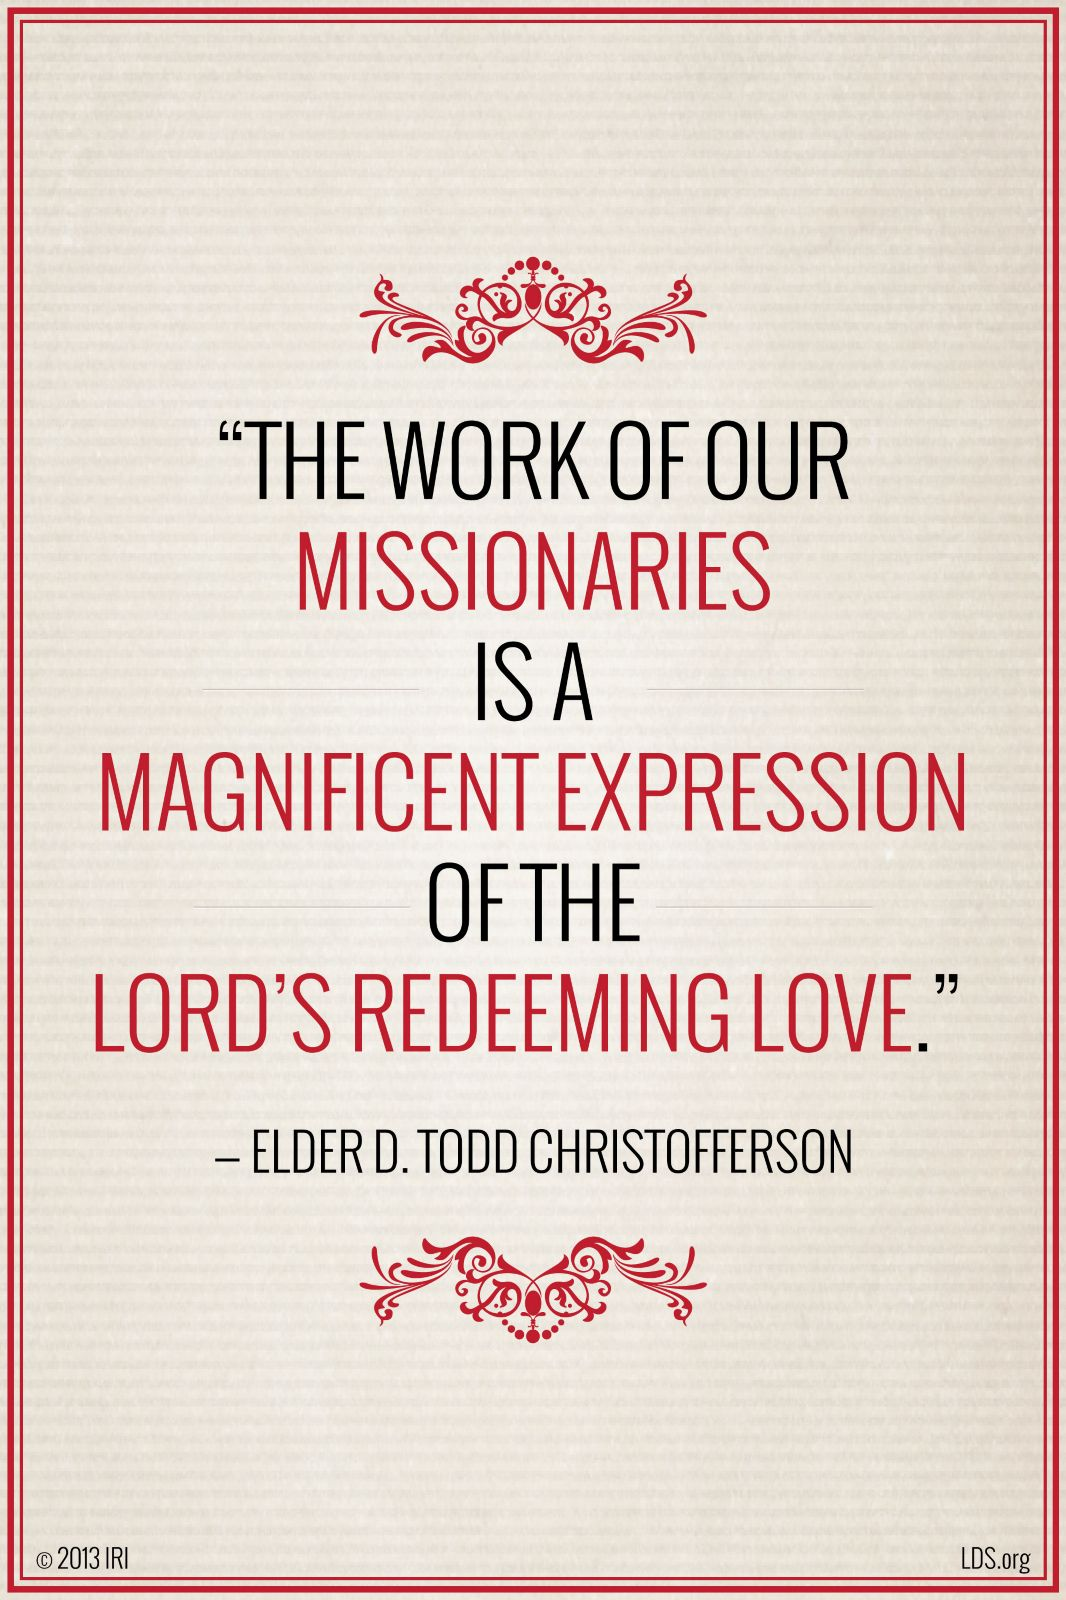 Lds Missionary Quotes Interesting The Work Of Our Missionaries Is A Magnificent Expression Of The